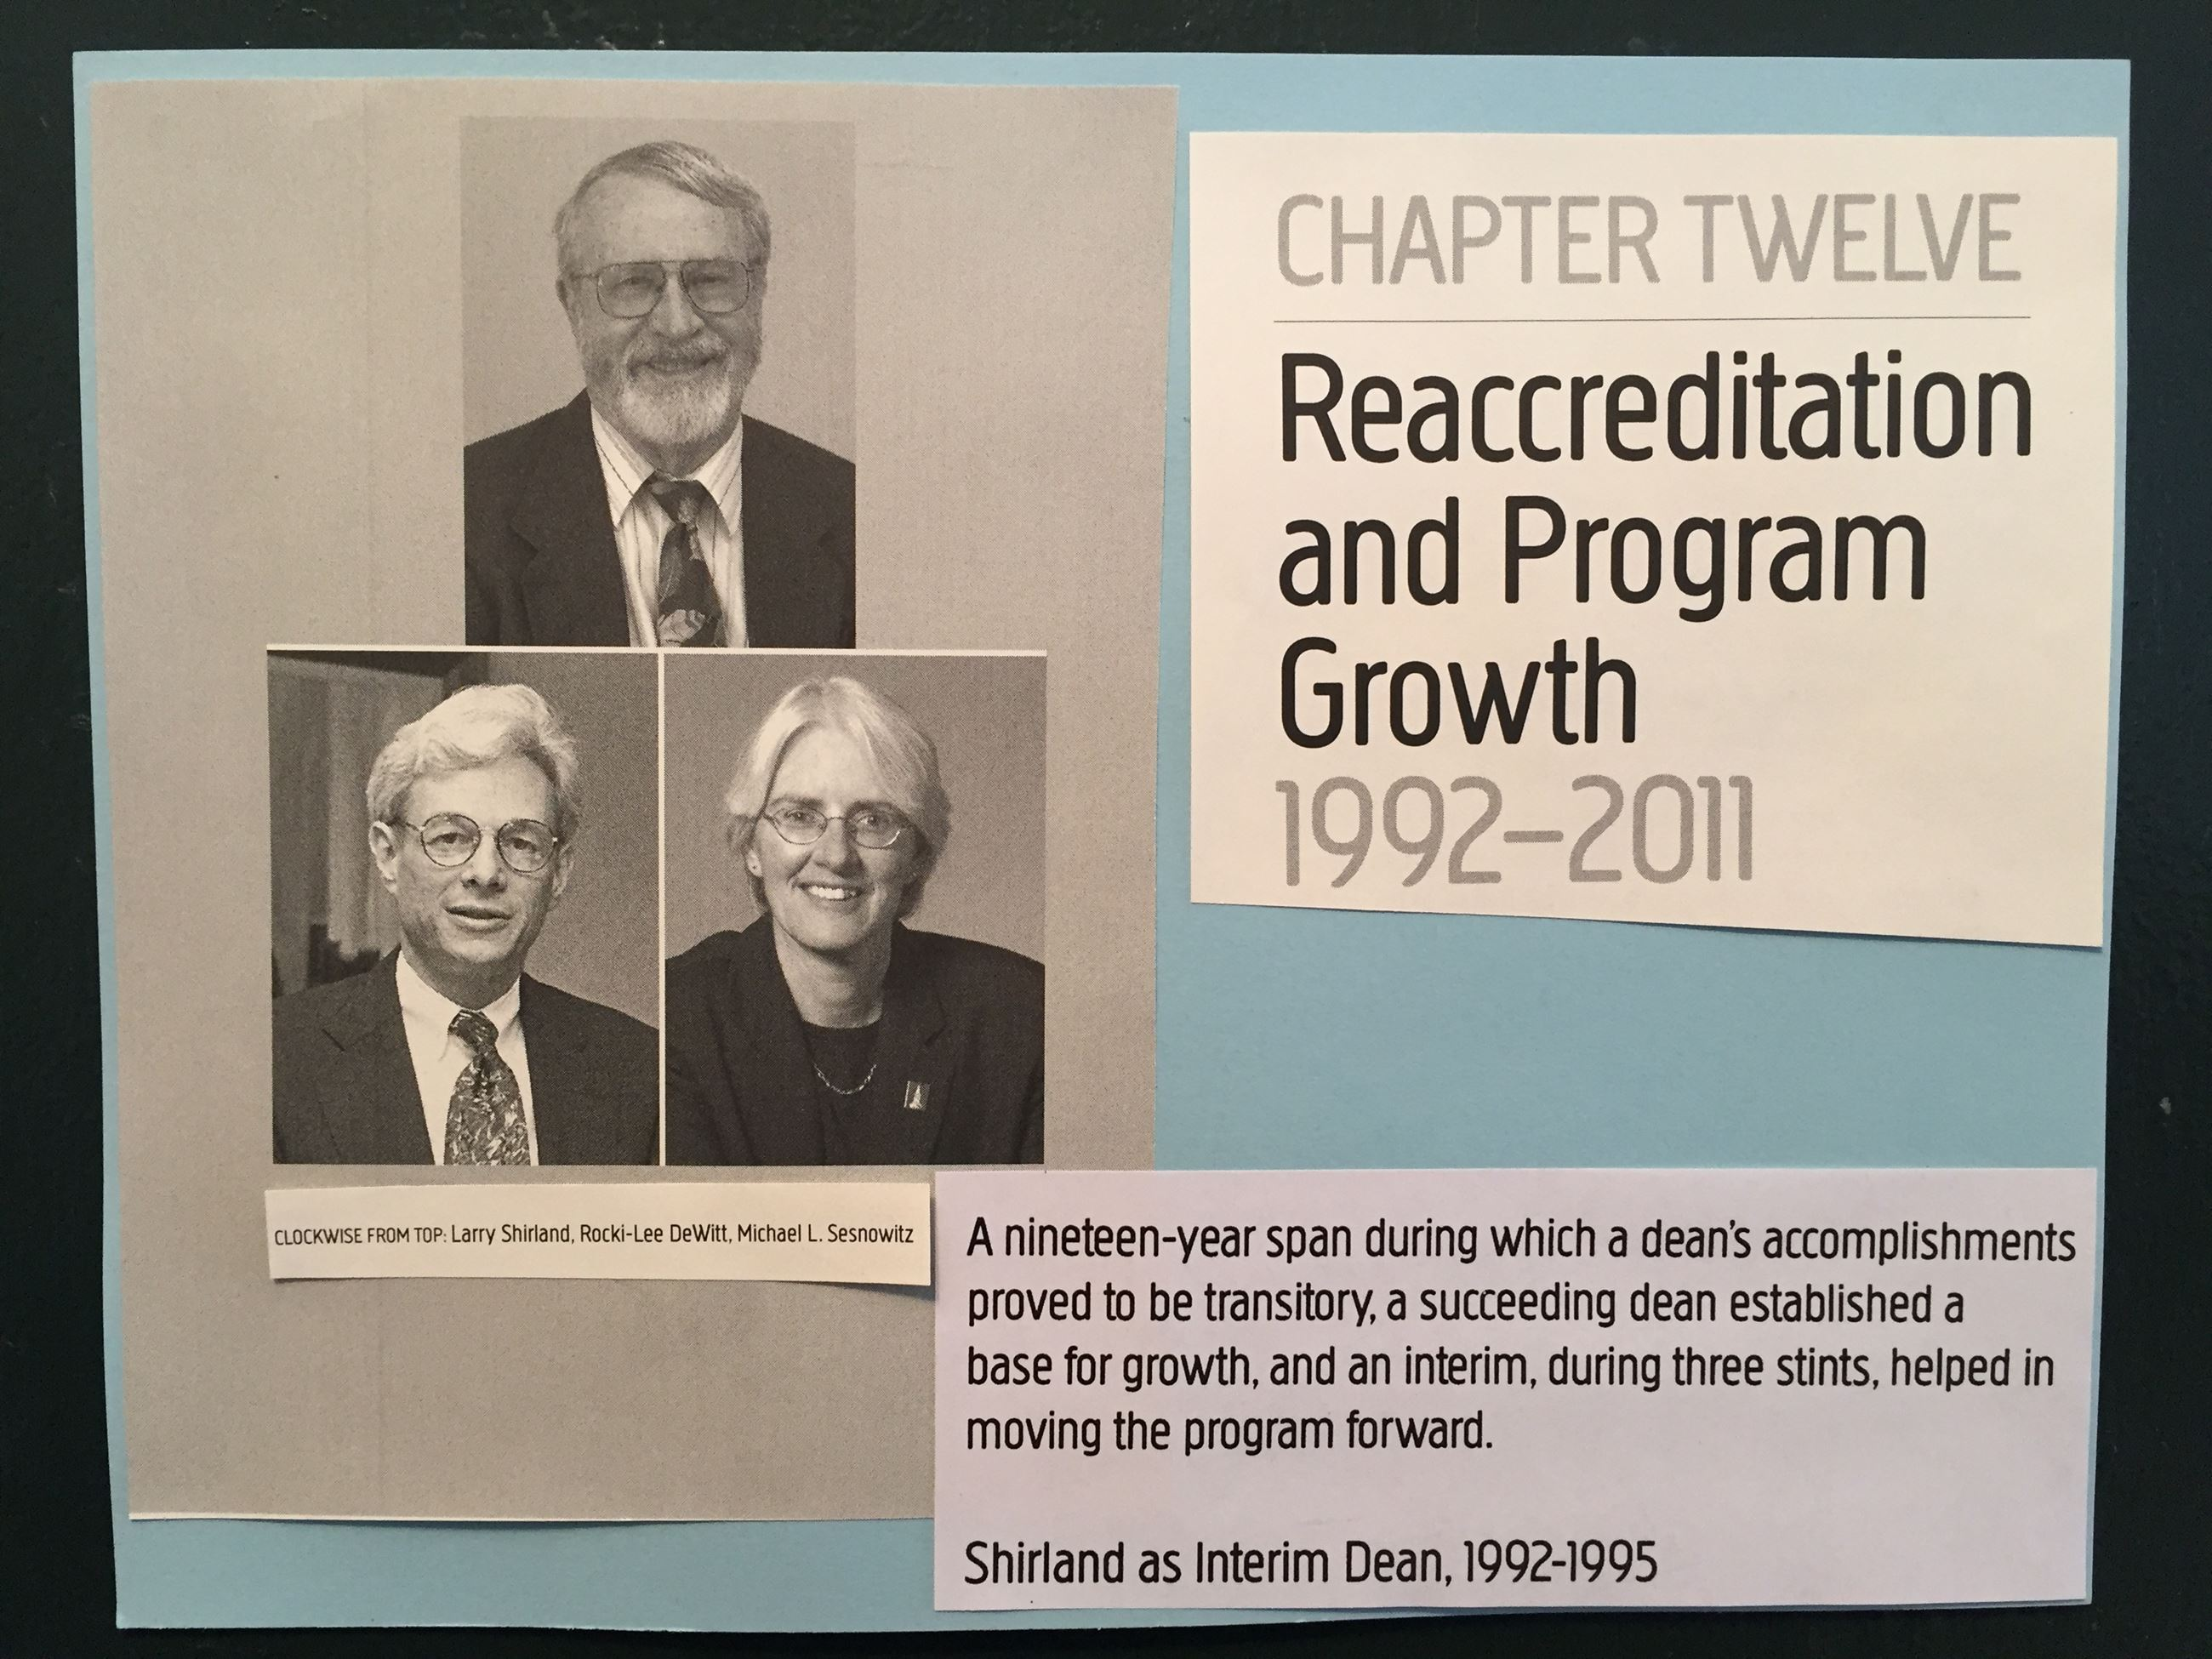 Reaccreditation and Program Growth